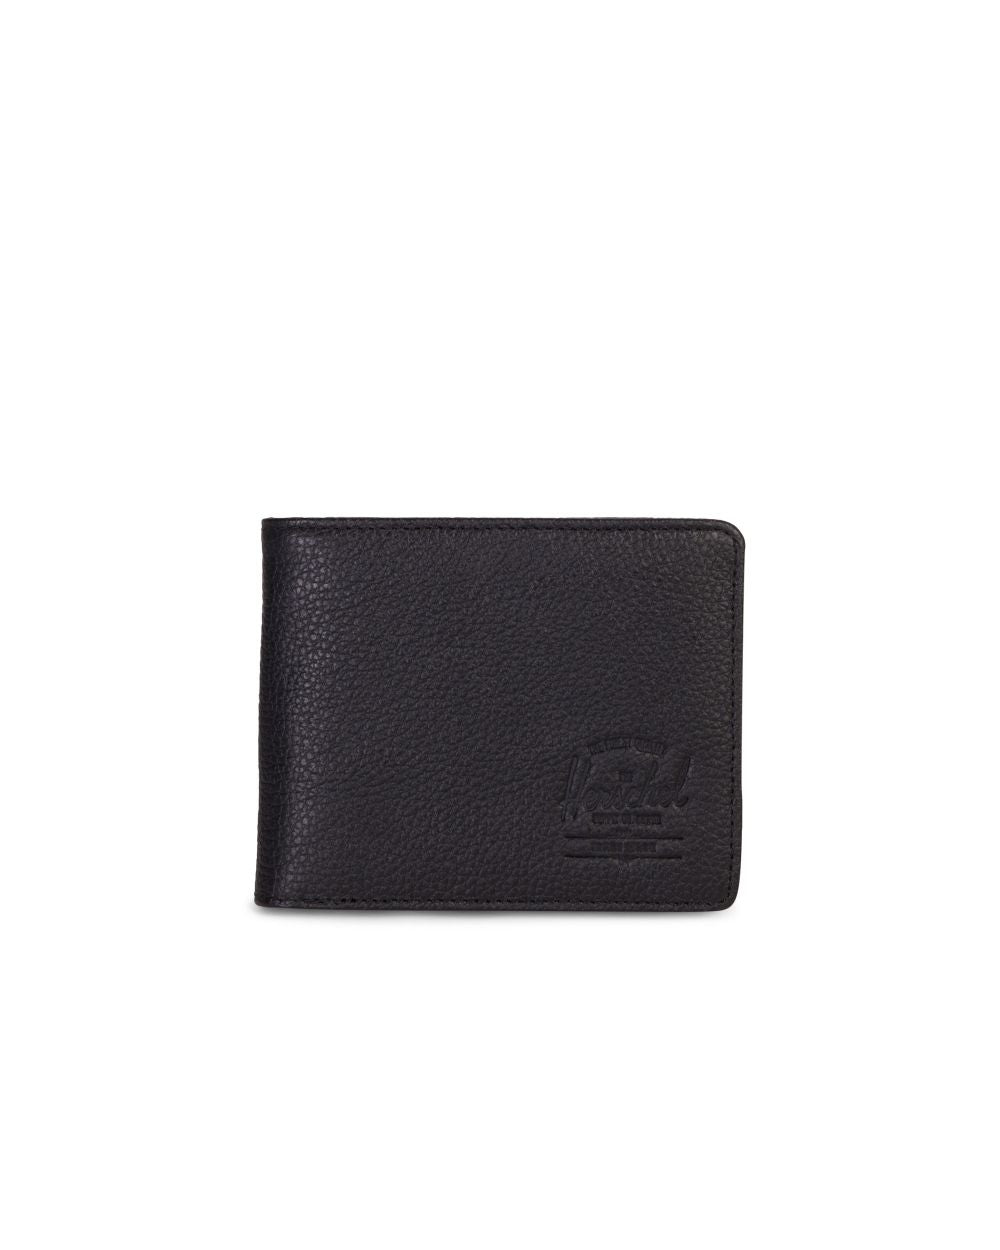 Cartera Hank - Black Pebbled Leather